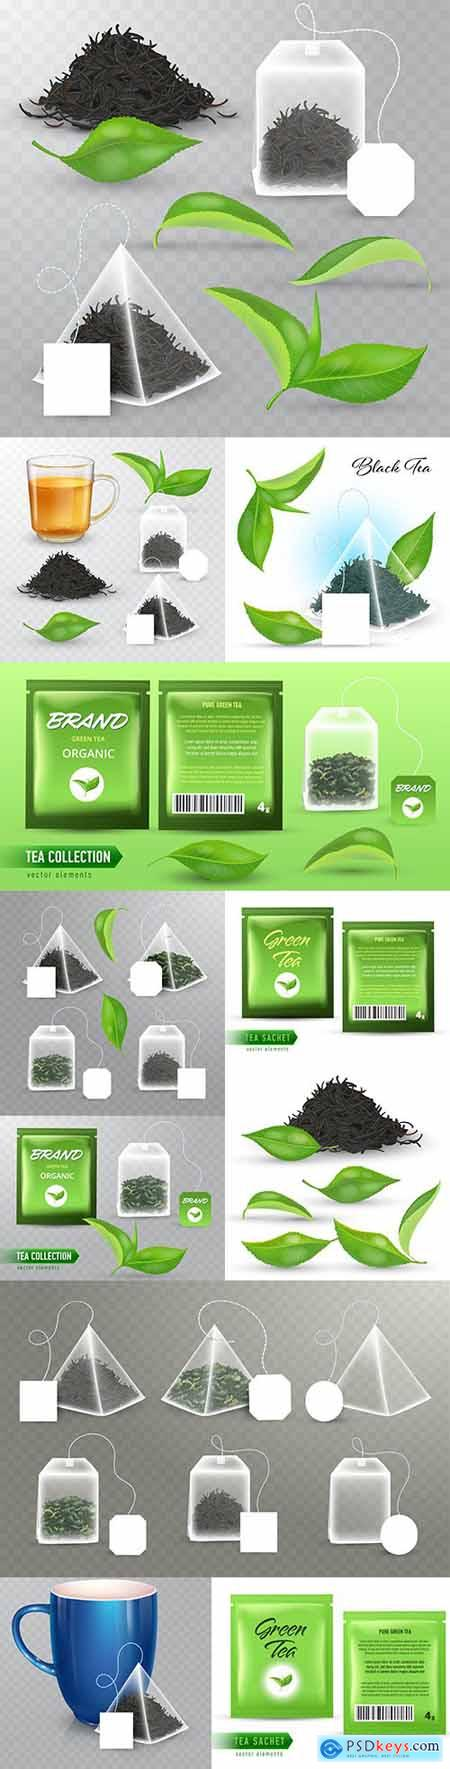 Green and black tea pyramidal bag and realistic leaves